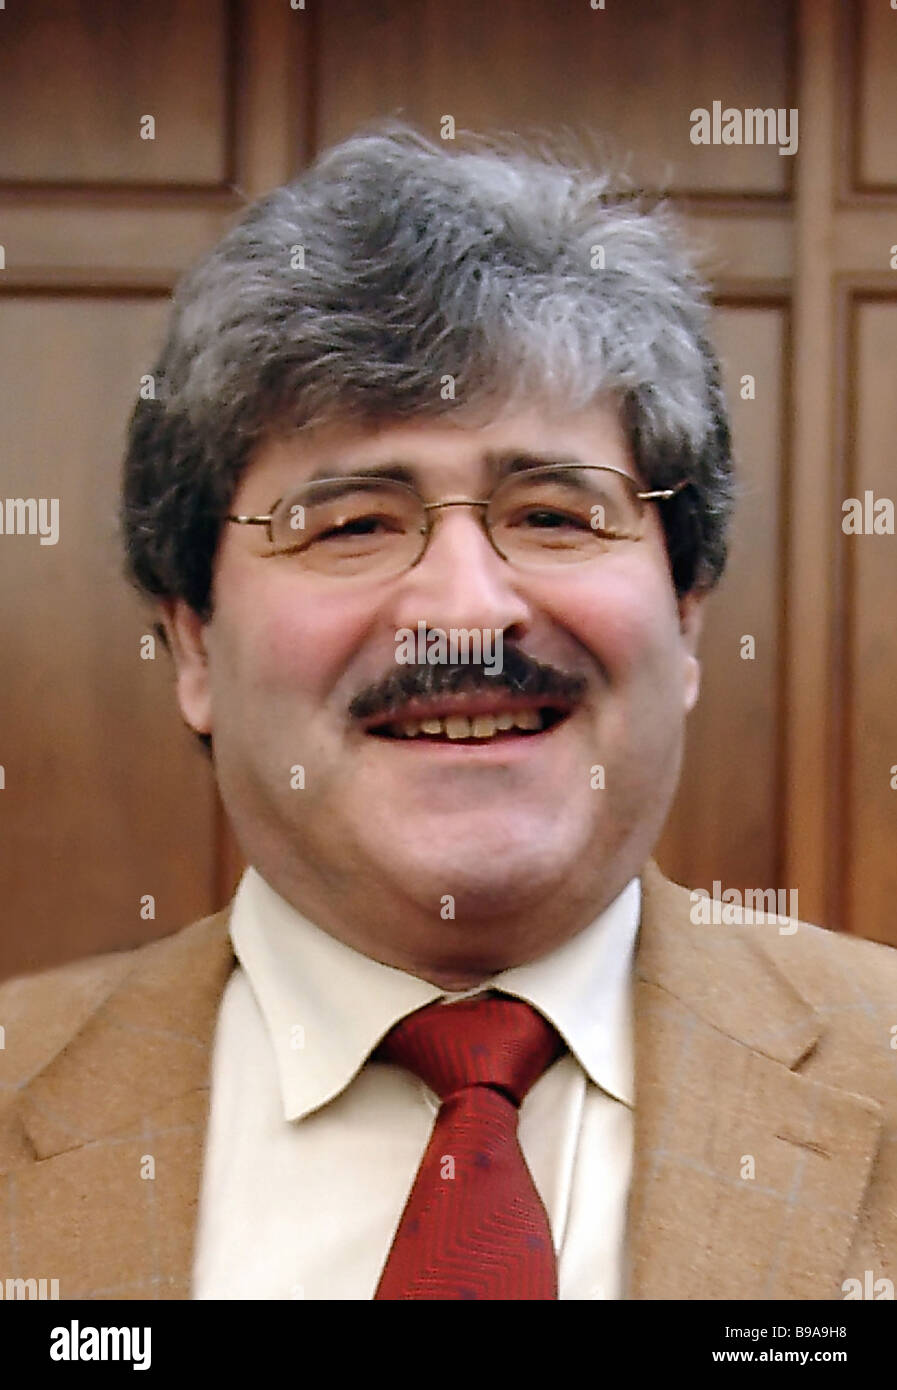 Armen Oganesyan The Voice of Russia radio broadcasting company President - Stock Image